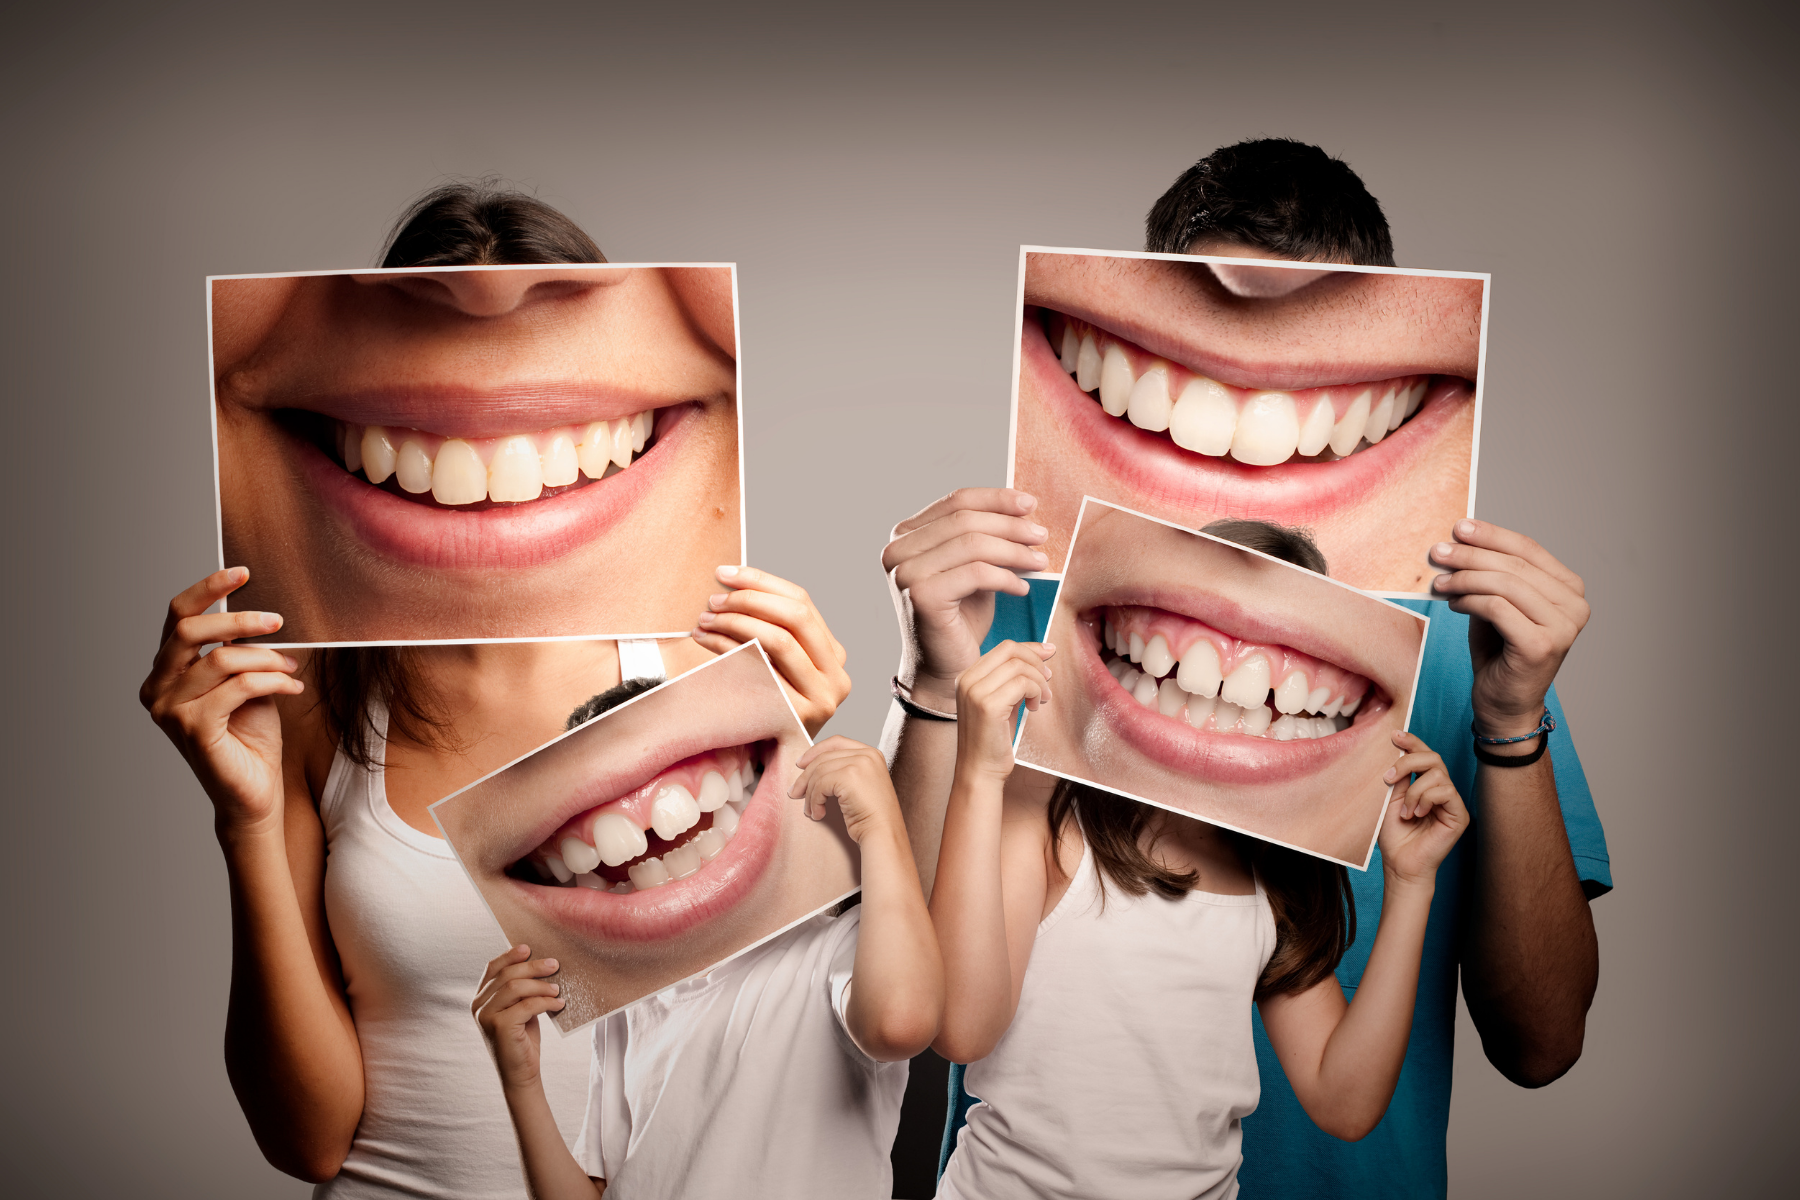 family holding pictures of smiles